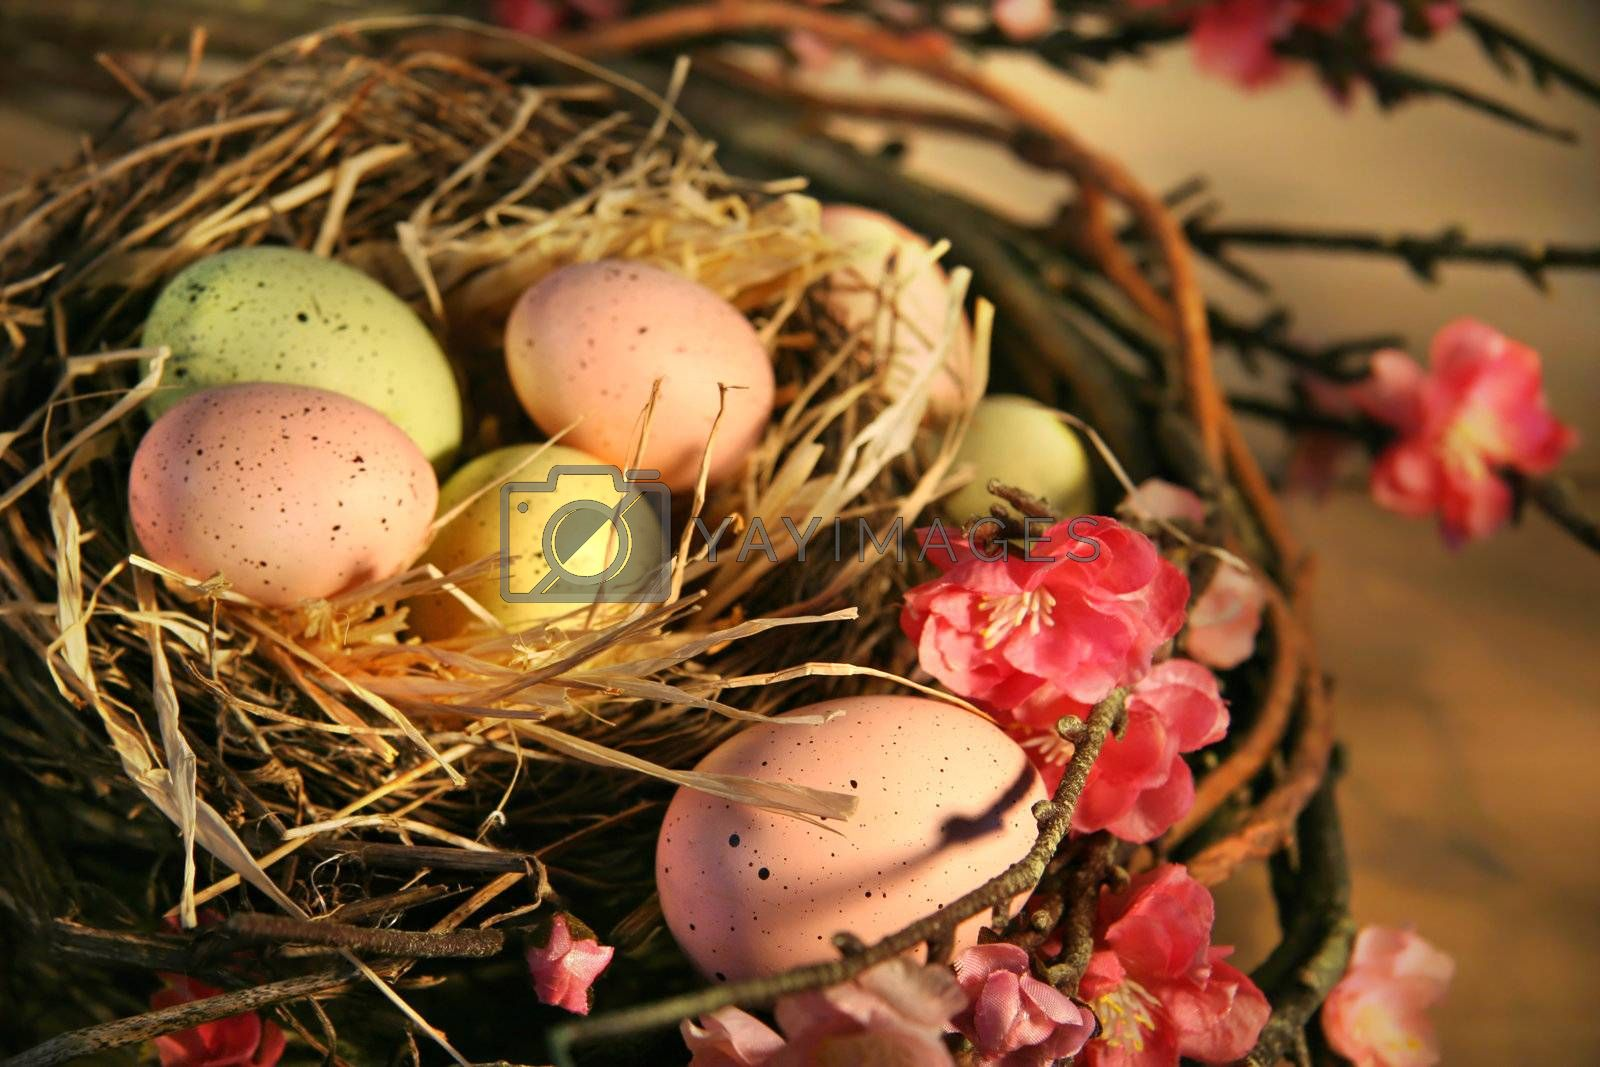 Pink and yellow Easter eggs in a bird nest